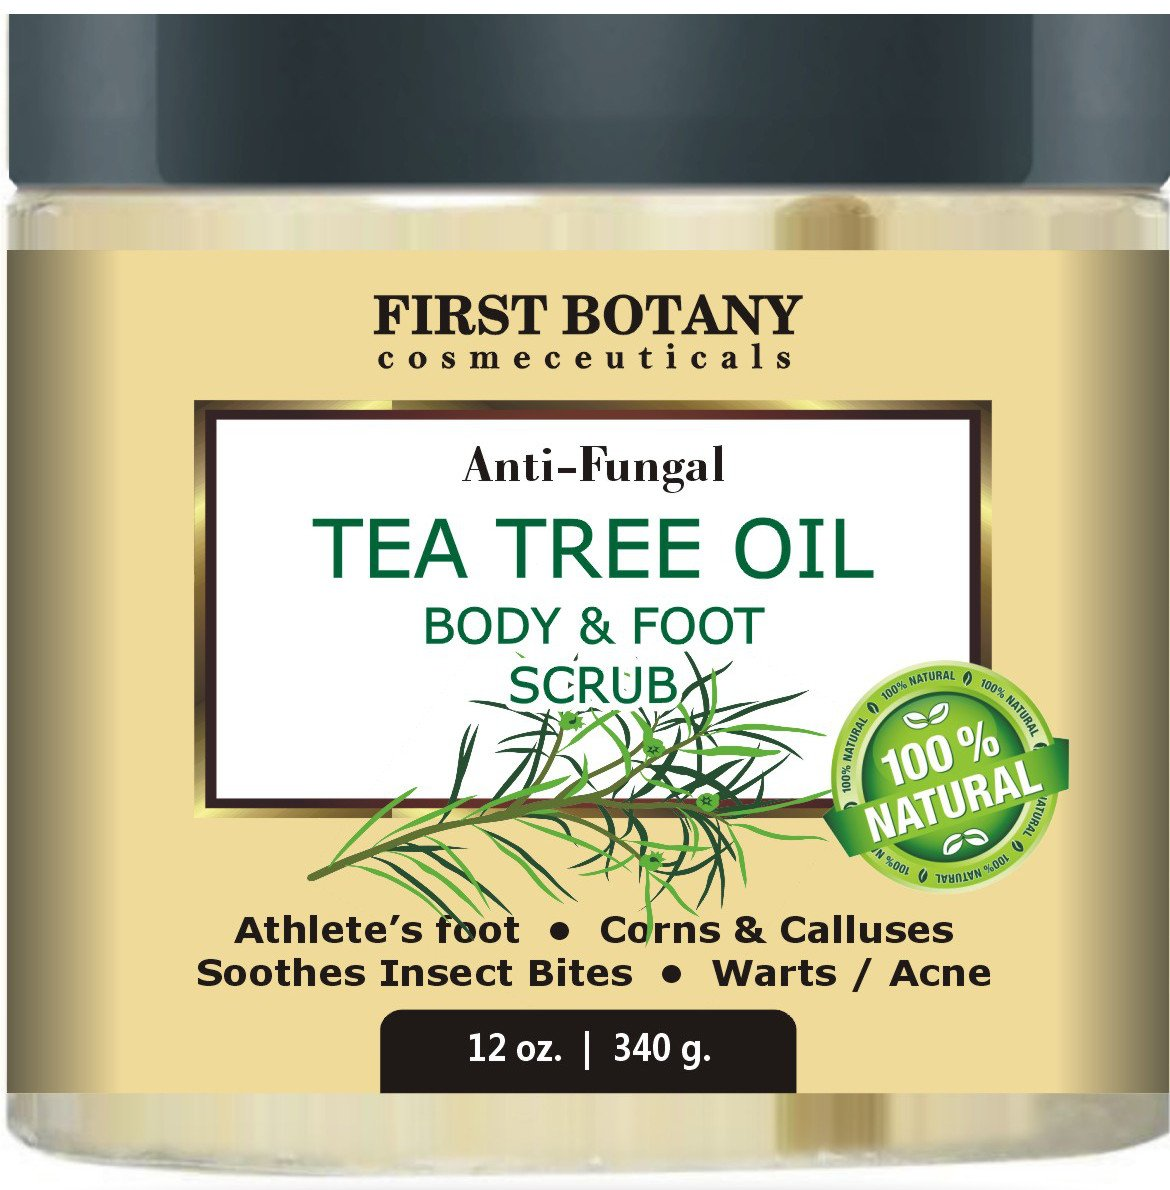 100% Natural Anti Fungal Tea Tree Oil Body & Foot Scrub 12 oz. with Dead Sea Salt – Best for Acne, Dandruff and Warts, Helps with Corns, Calluses, Athlete foot, Jock Itch & Body Odor